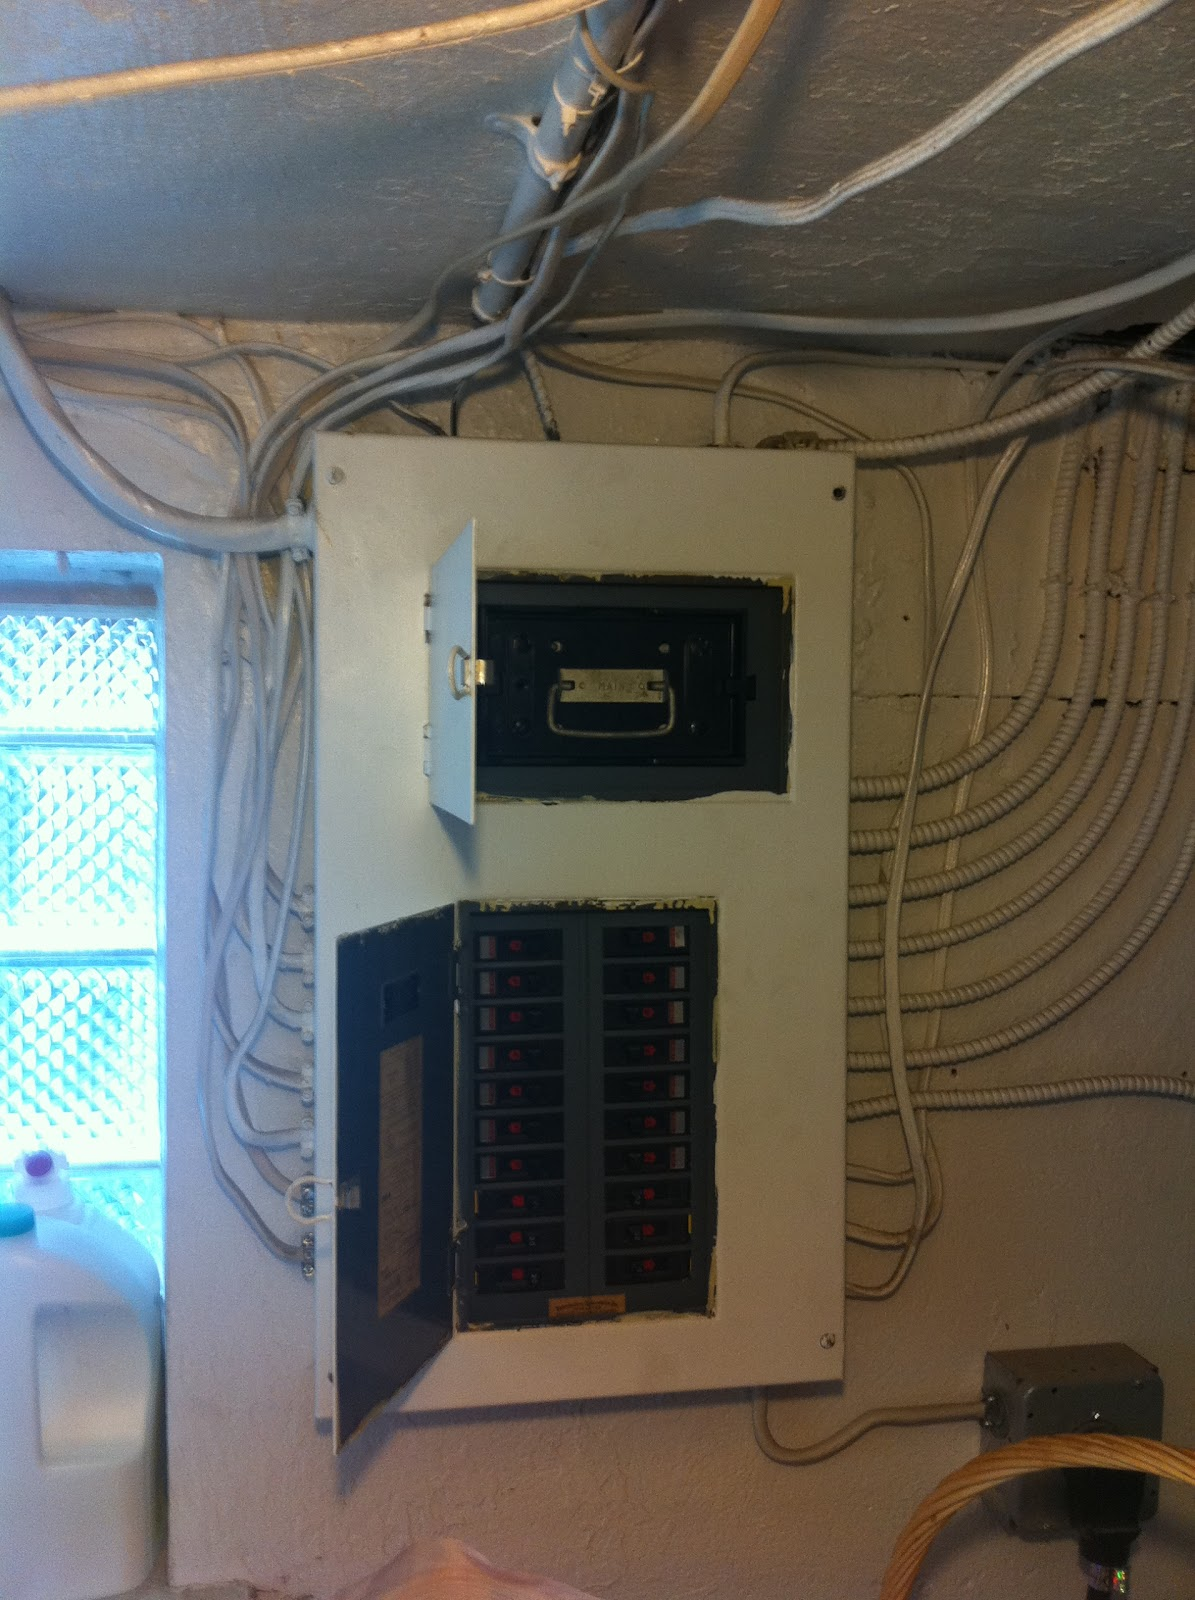 small resolution of this panel is a combination main electrical fuse with circuit breaker on the branch circuits the top black box with the silver metal handle is the box that